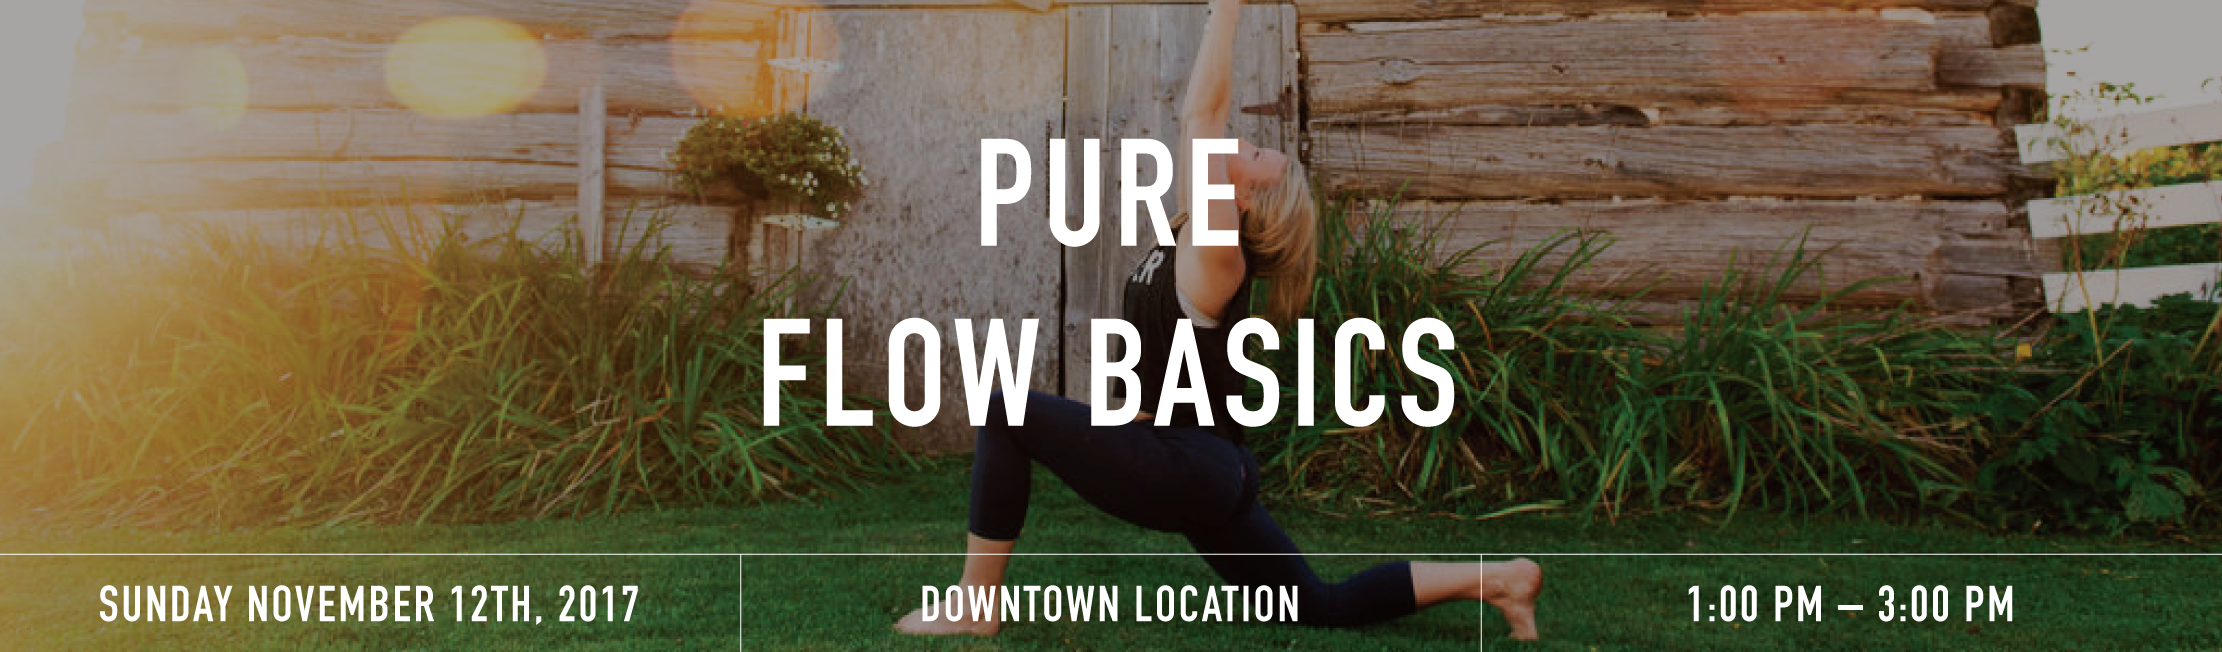 Pure flow basics banner  1